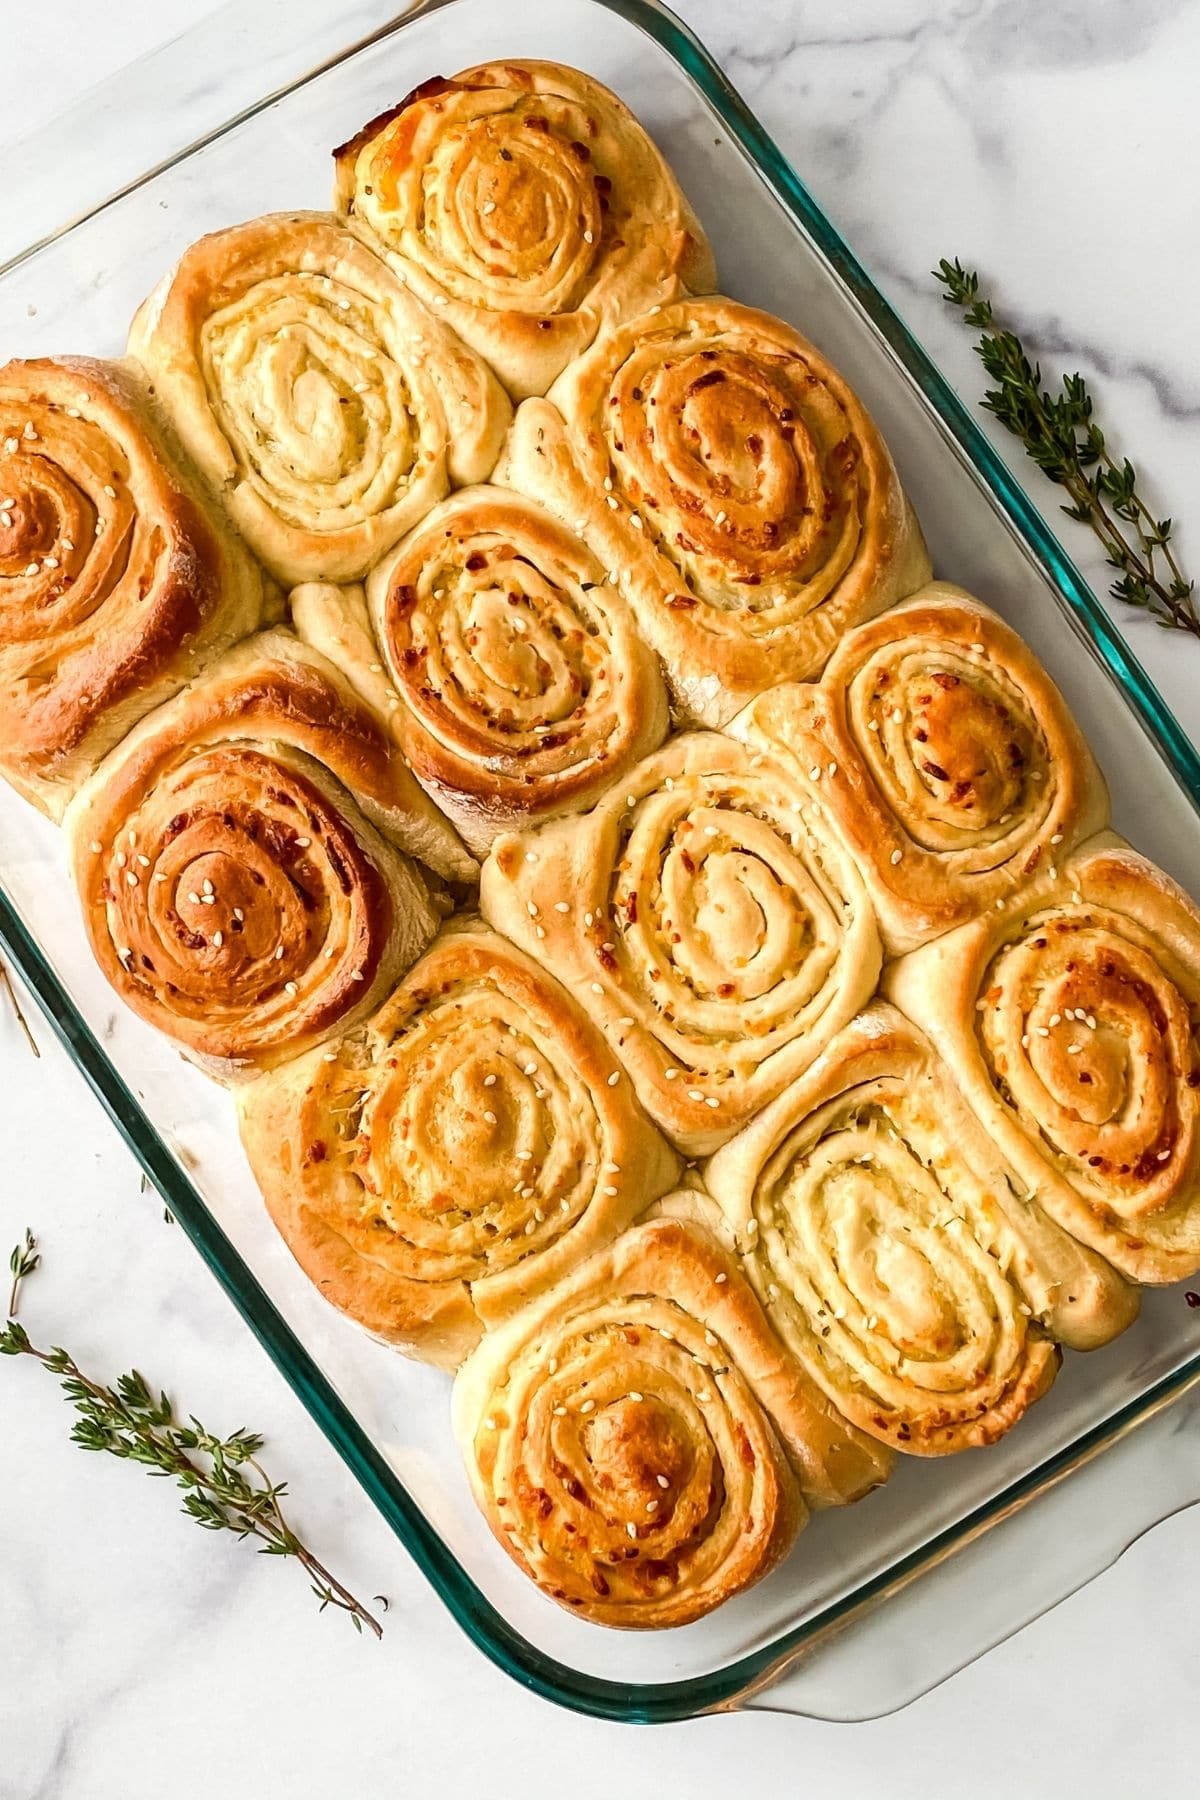 mozzarella and thyme rolls in baking dish